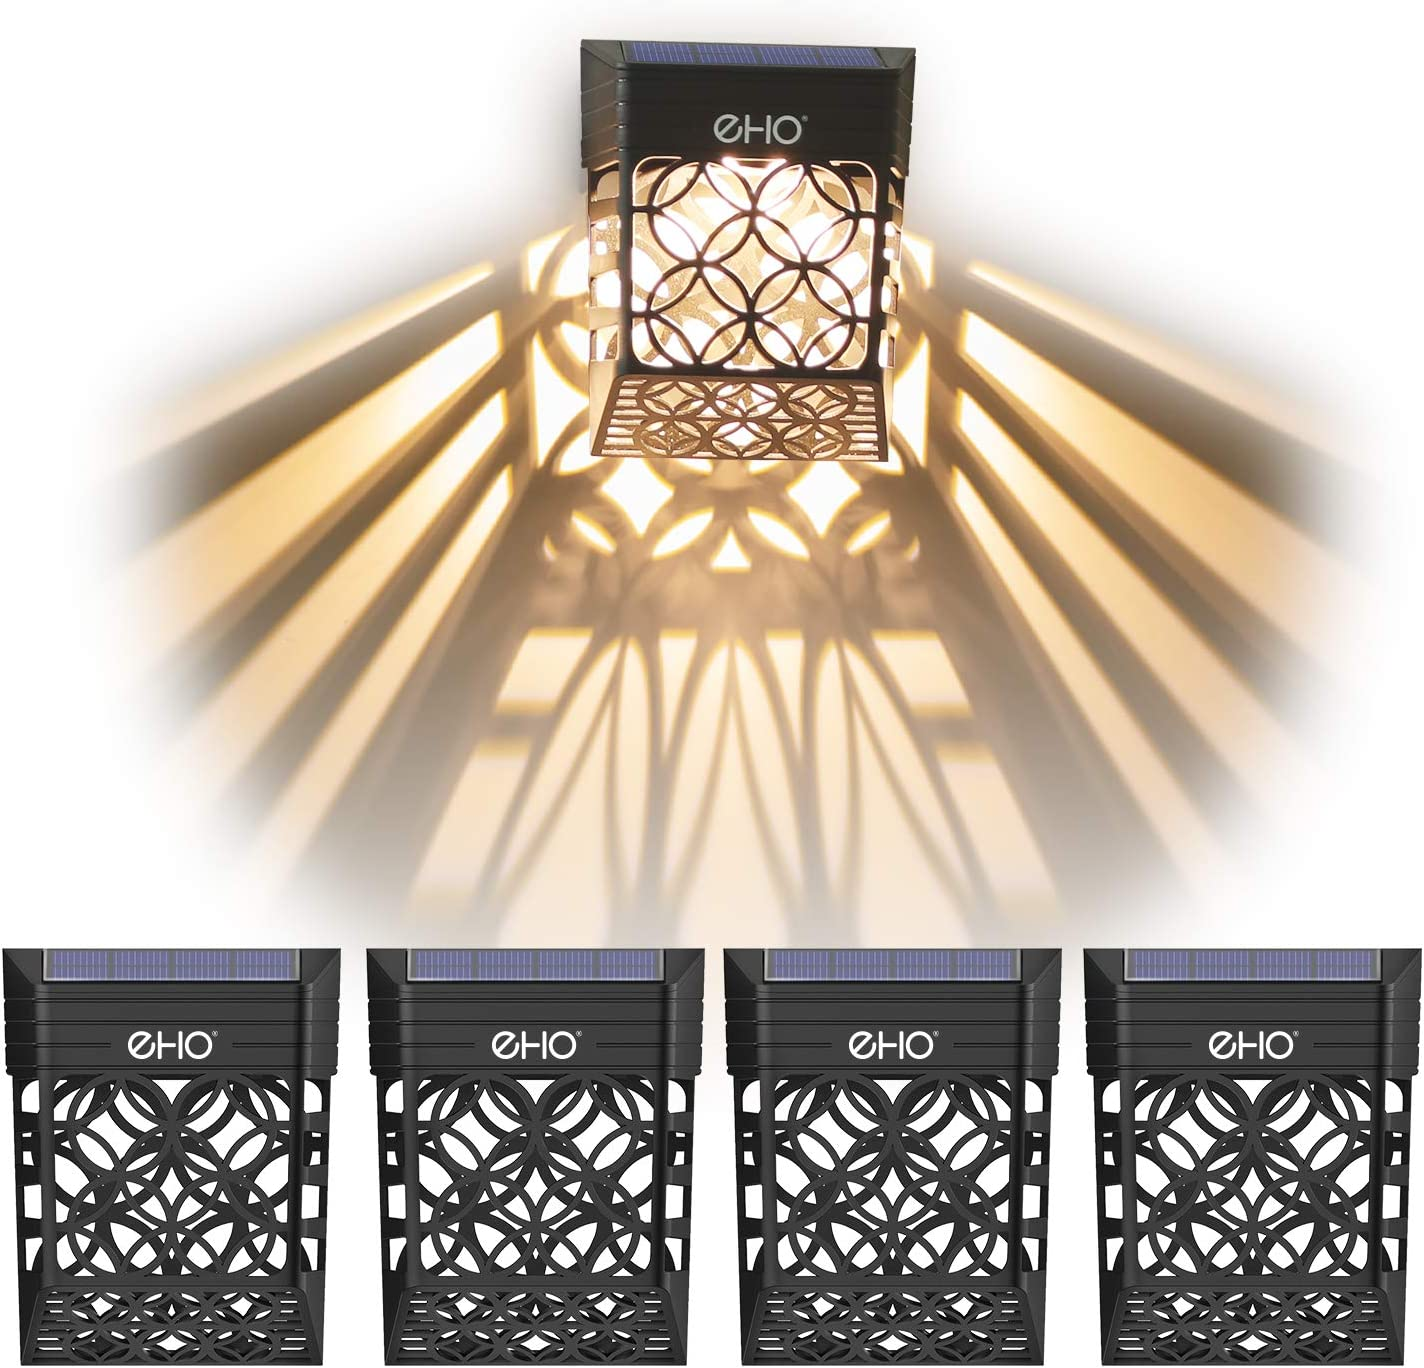 EHO Solar Deck Lights, Solar Fence Lights Outdoor Waterproof LED Garden Decorative Lighting for Post,Patio, Front Door, Step, Stair, Landscape and Yard, Warm White, 4 Pack